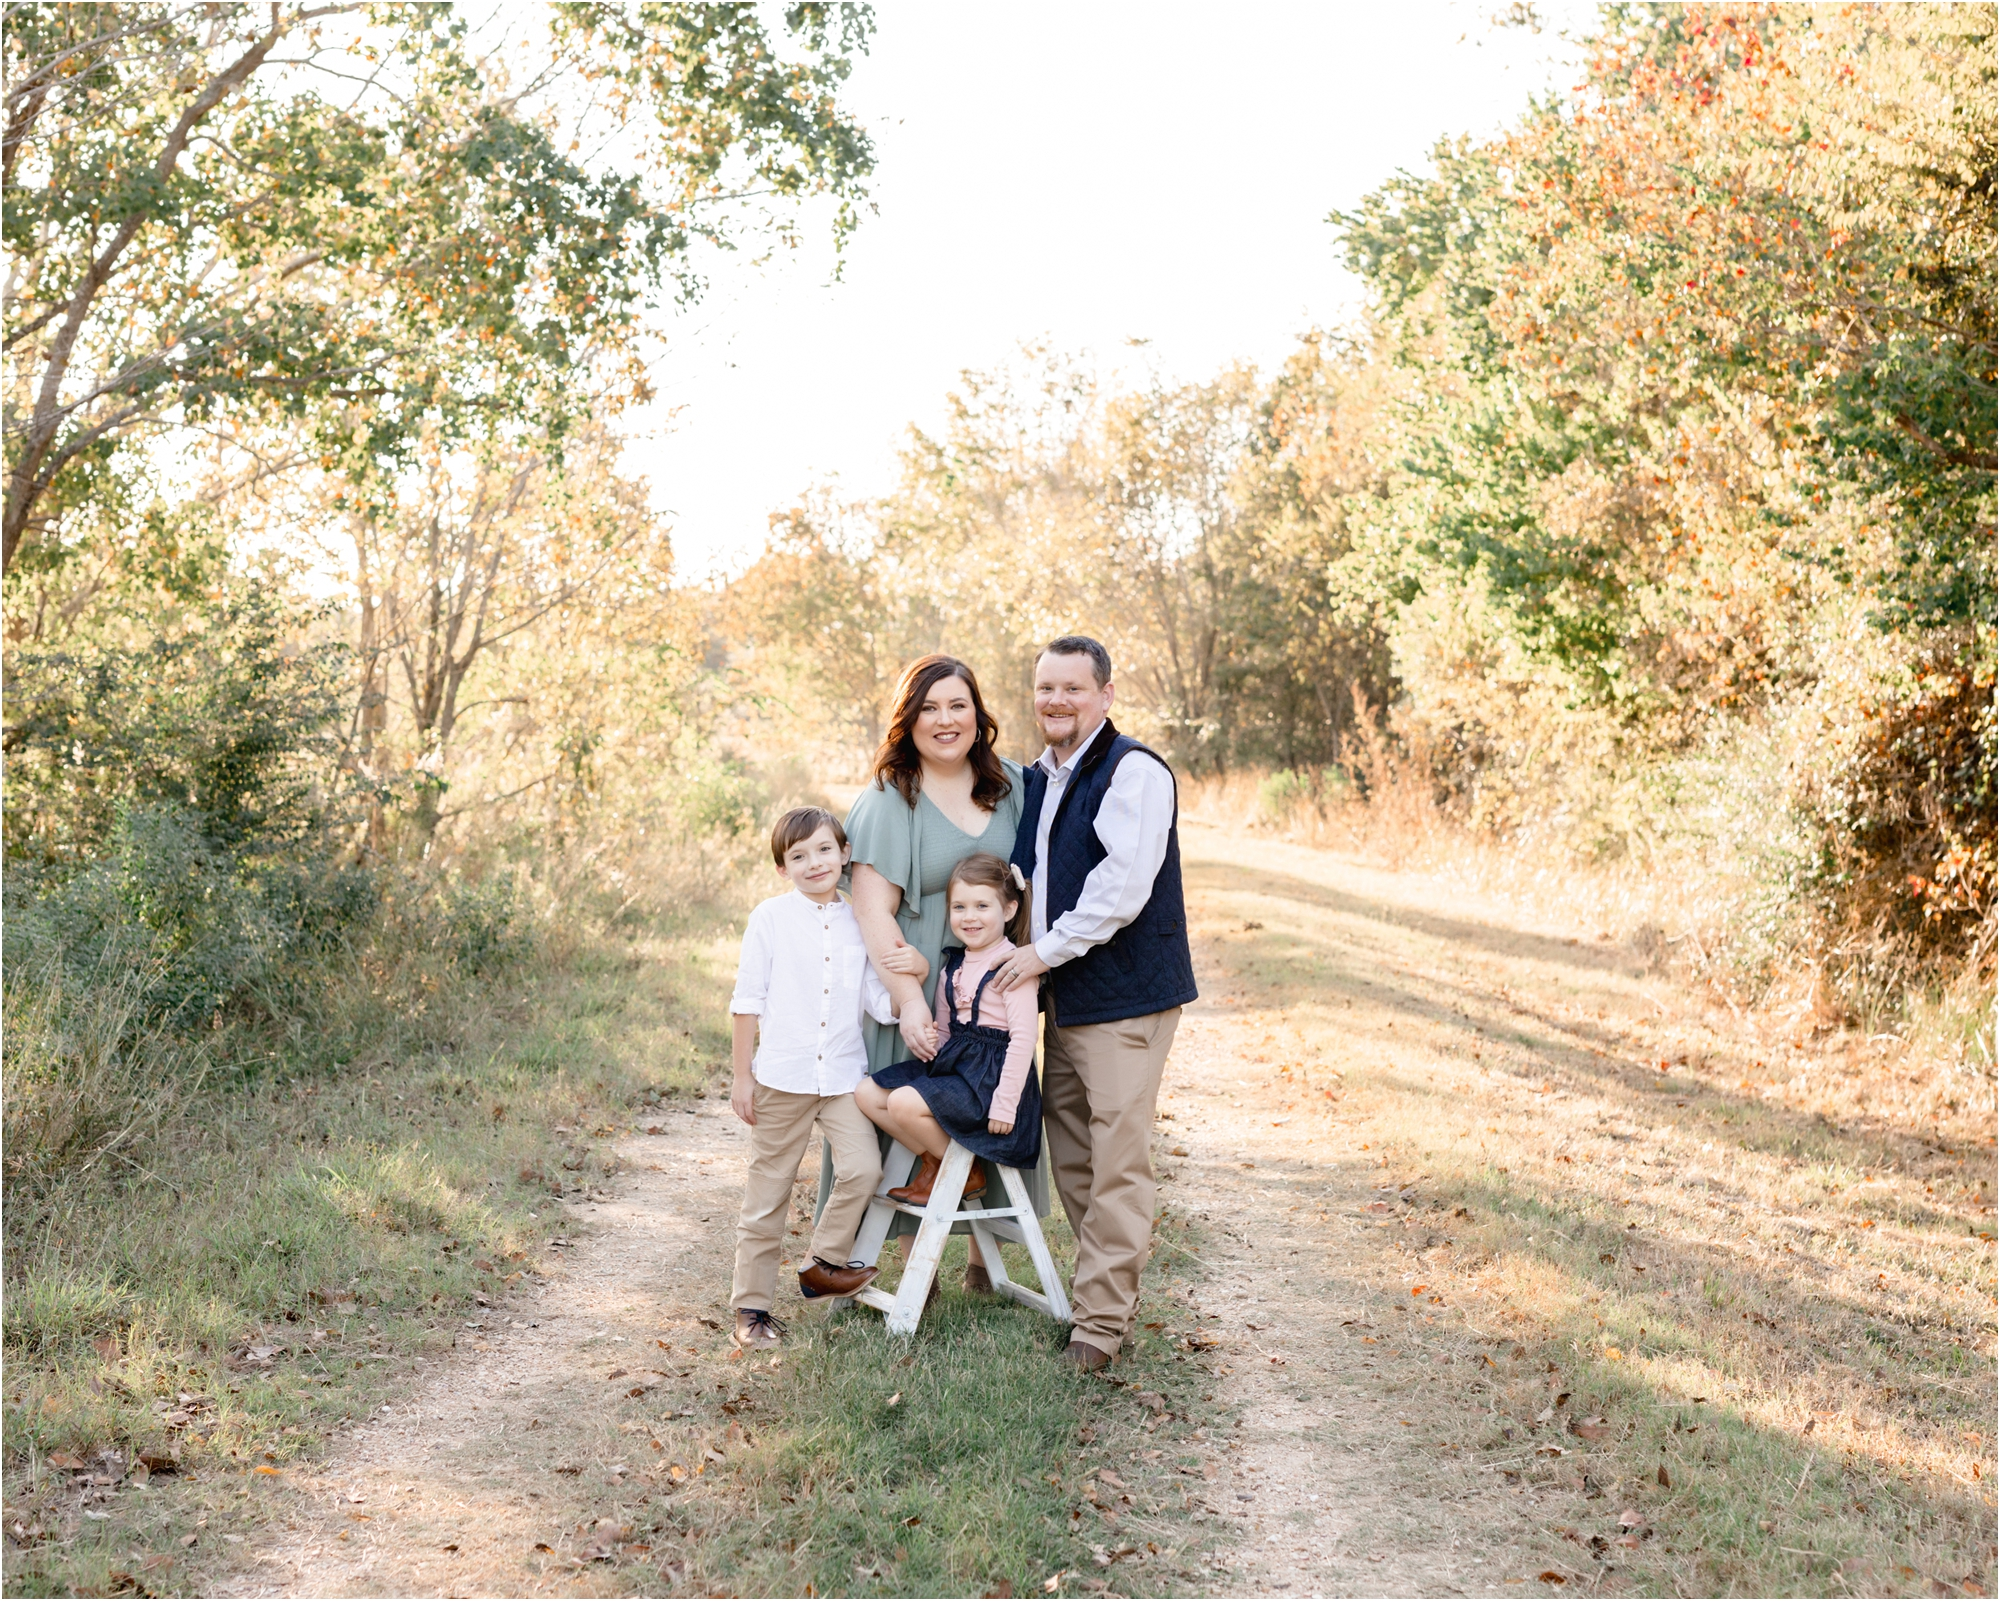 Sweet family portrait with parents and two kids smiling at camera. Photo by family photographer in Katy TX, Lifetime of Clicks Photography.